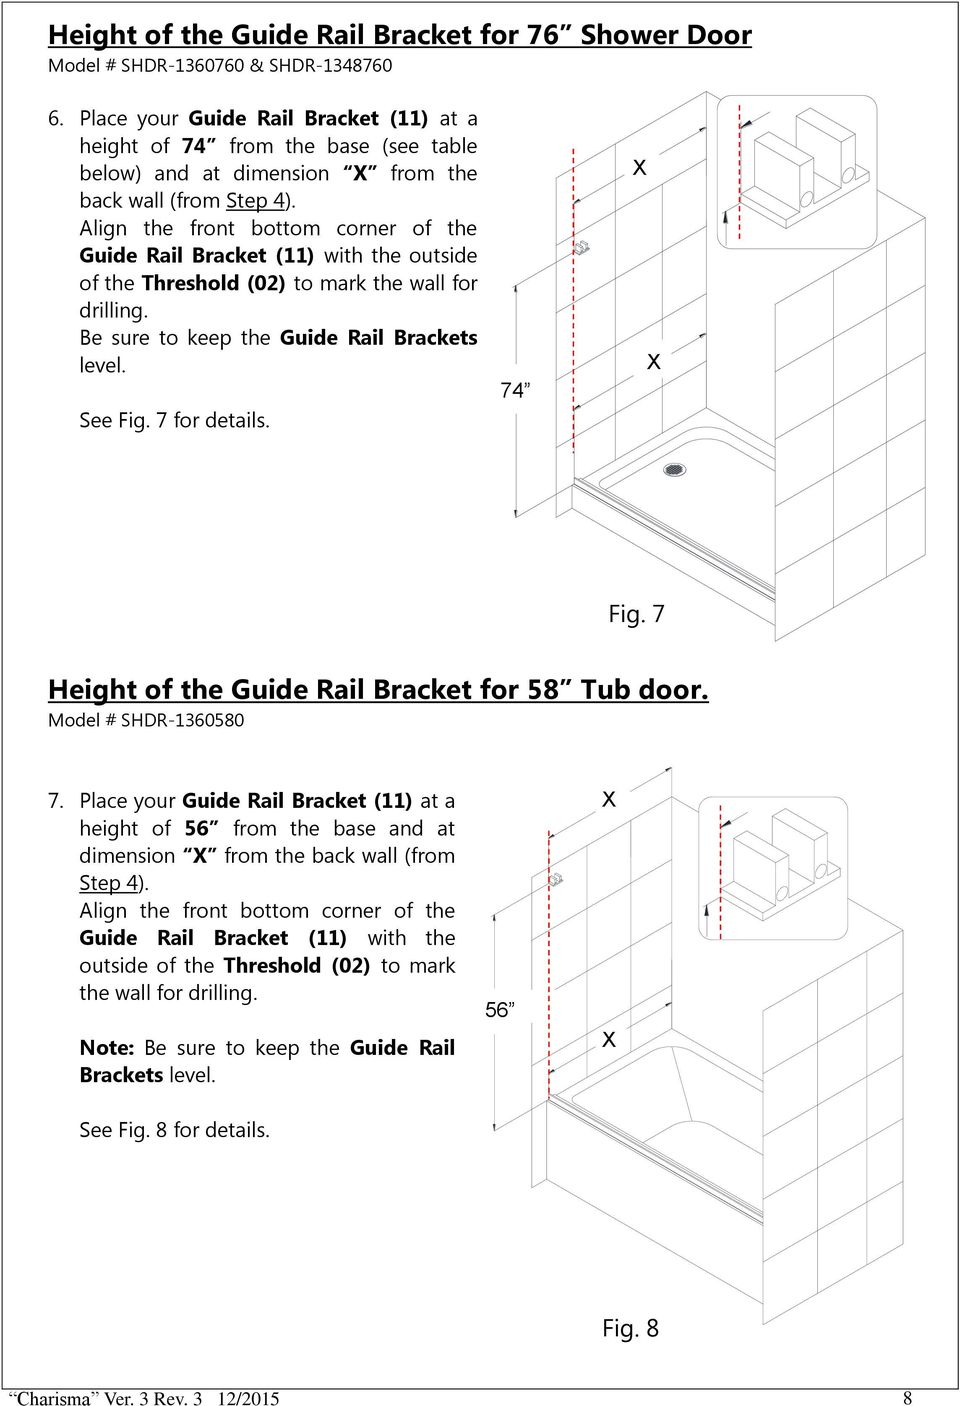 Align the front bottom corner of the Guide Rail Bracket (11) with the outside of the Threshold (02) to mark the wall for drilling. Be sure to keep the Guide Rail Brackets level. See Fig.